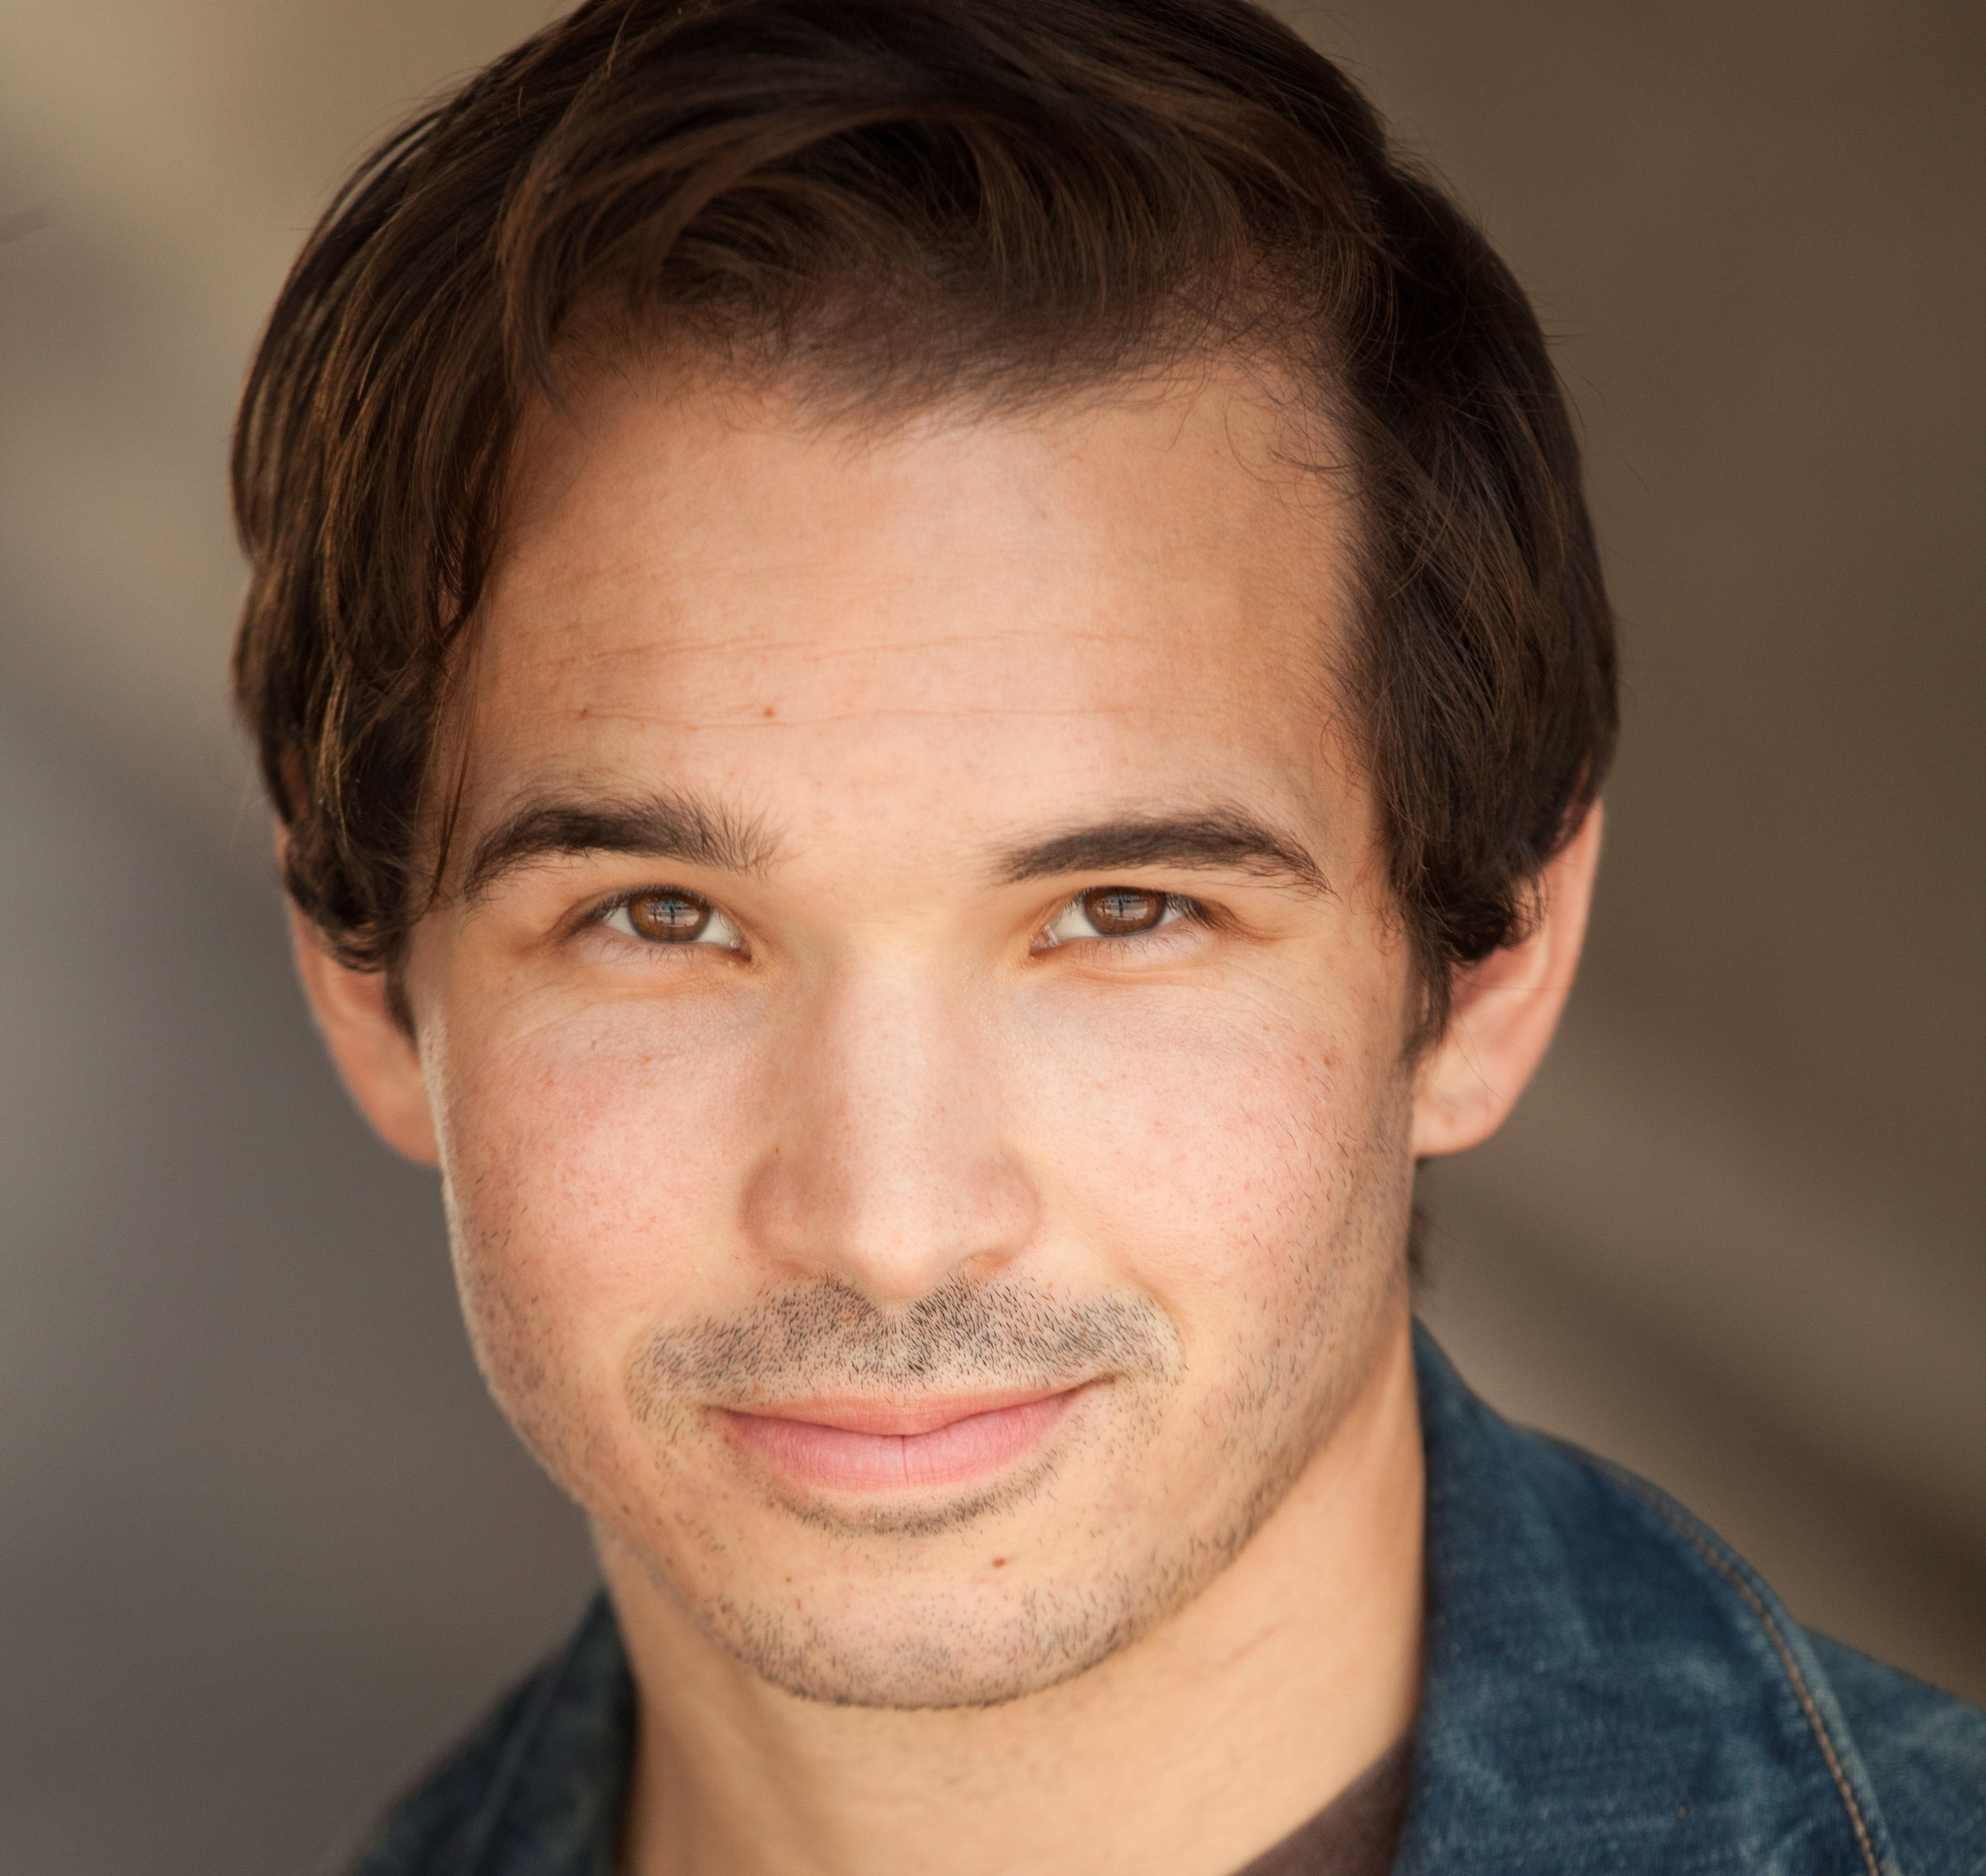 KORAY TARHAN  ( Pippin)  is thrilled to be making his Venus Cabaret Theater debut. Originally from Los Angeles, Koray graduated from Columbia College Chicago in 2013 and began traveling the country working regionally from San Diego to Cincinnati. Previous credits include  The Boy Who Danced on Air  (Diversionary Theatre, San Diego),  Cabaret  (Lewis Family Playhouse),  Memphis  (Porchlight Music Theater) and  Seussical  (Drury Lane).